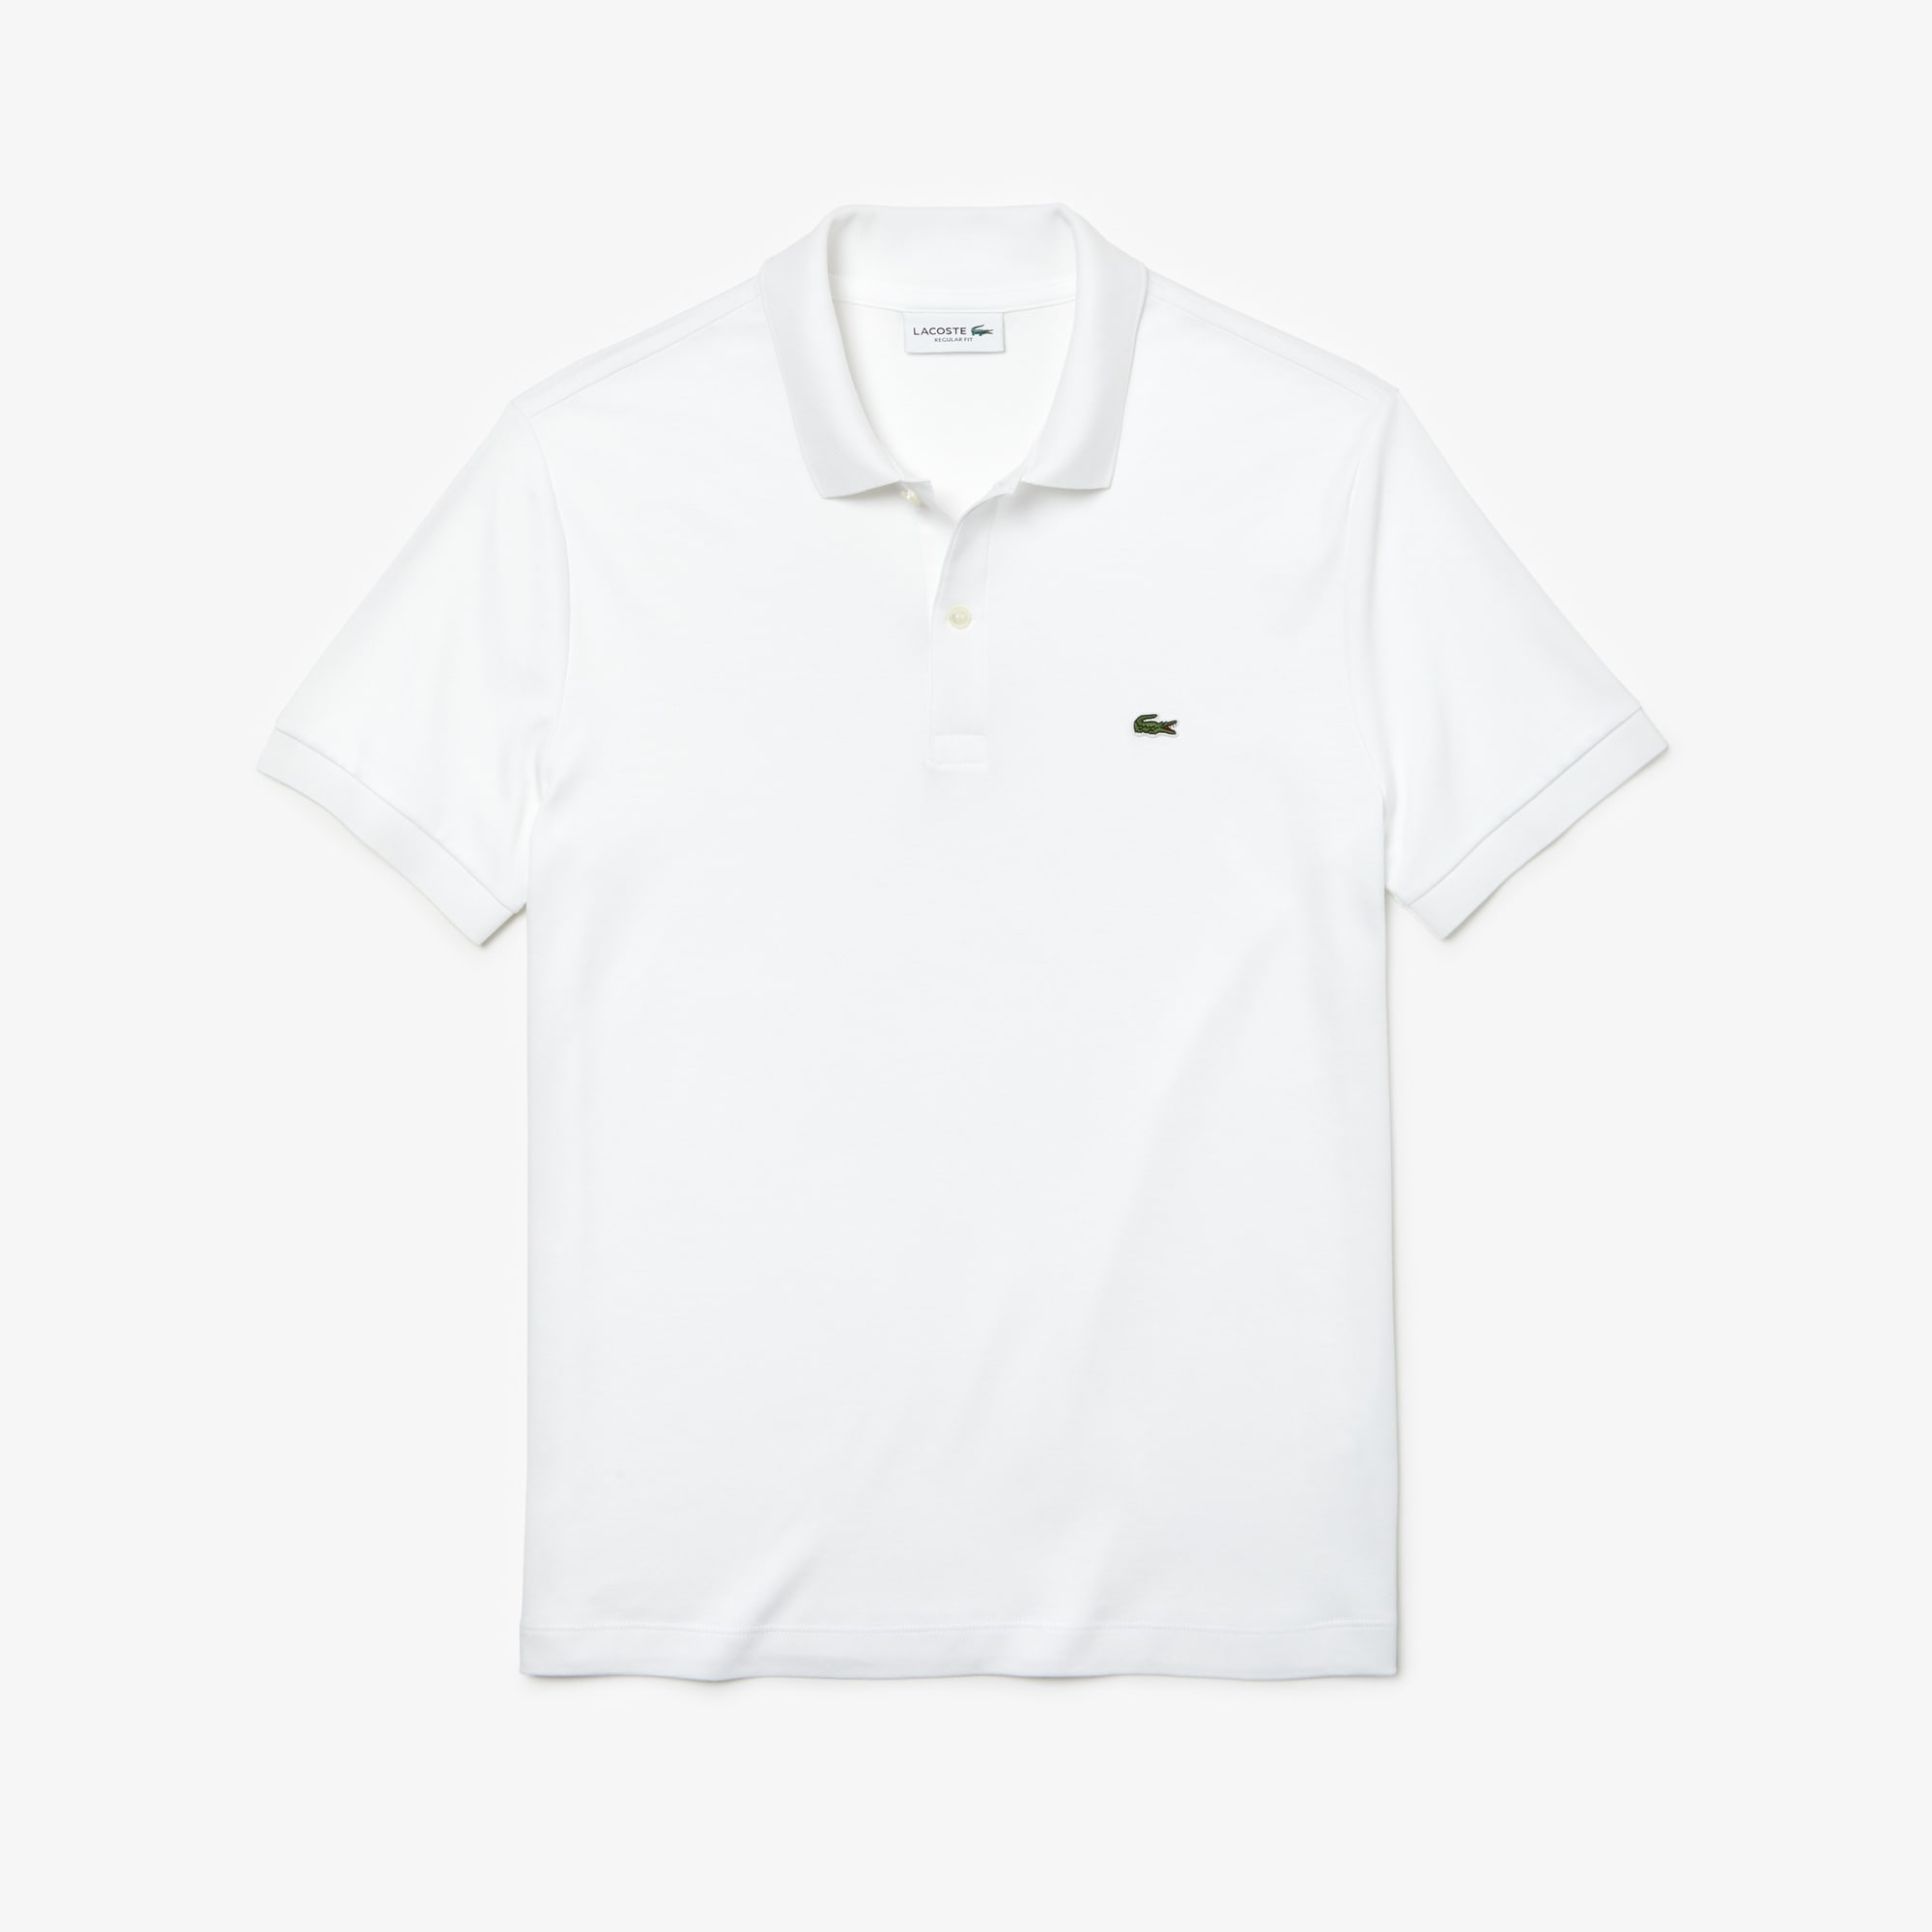 341d3916 Men's Regular Fit Pima Cotton Interlock Polo | LACOSTE